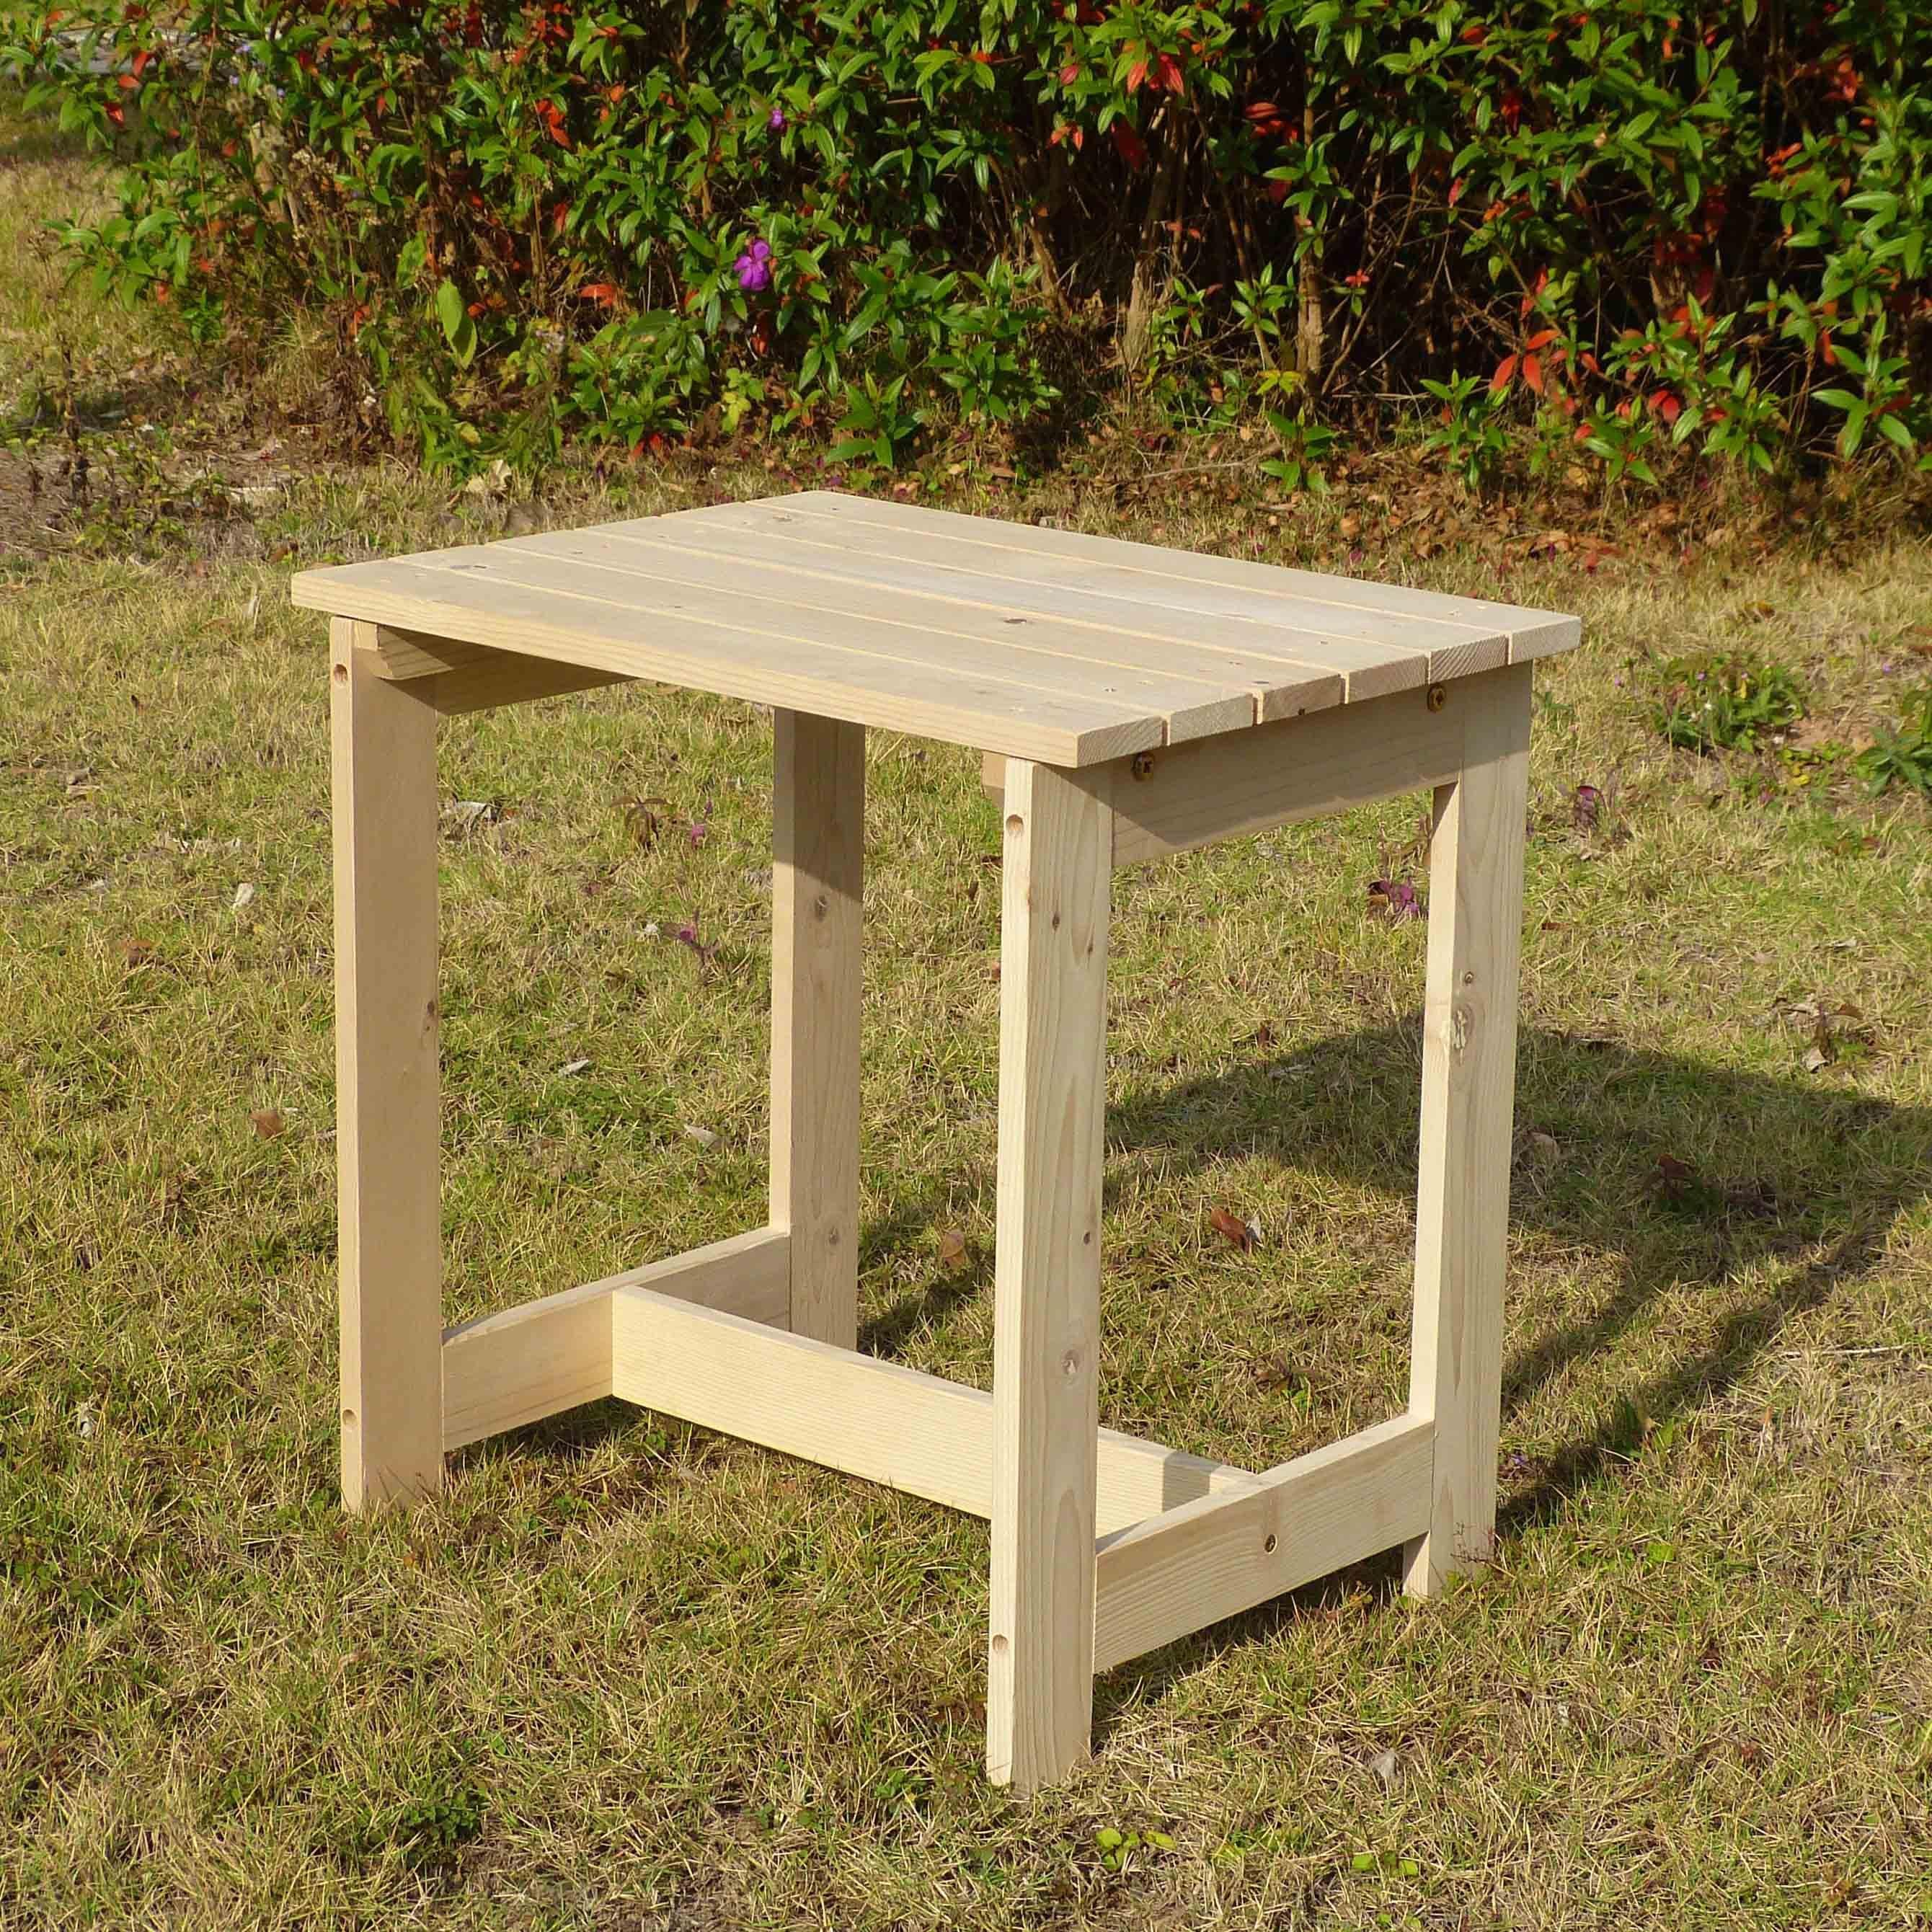 Merry Products Utility Side Table Kit (Natural), Patio Fu...